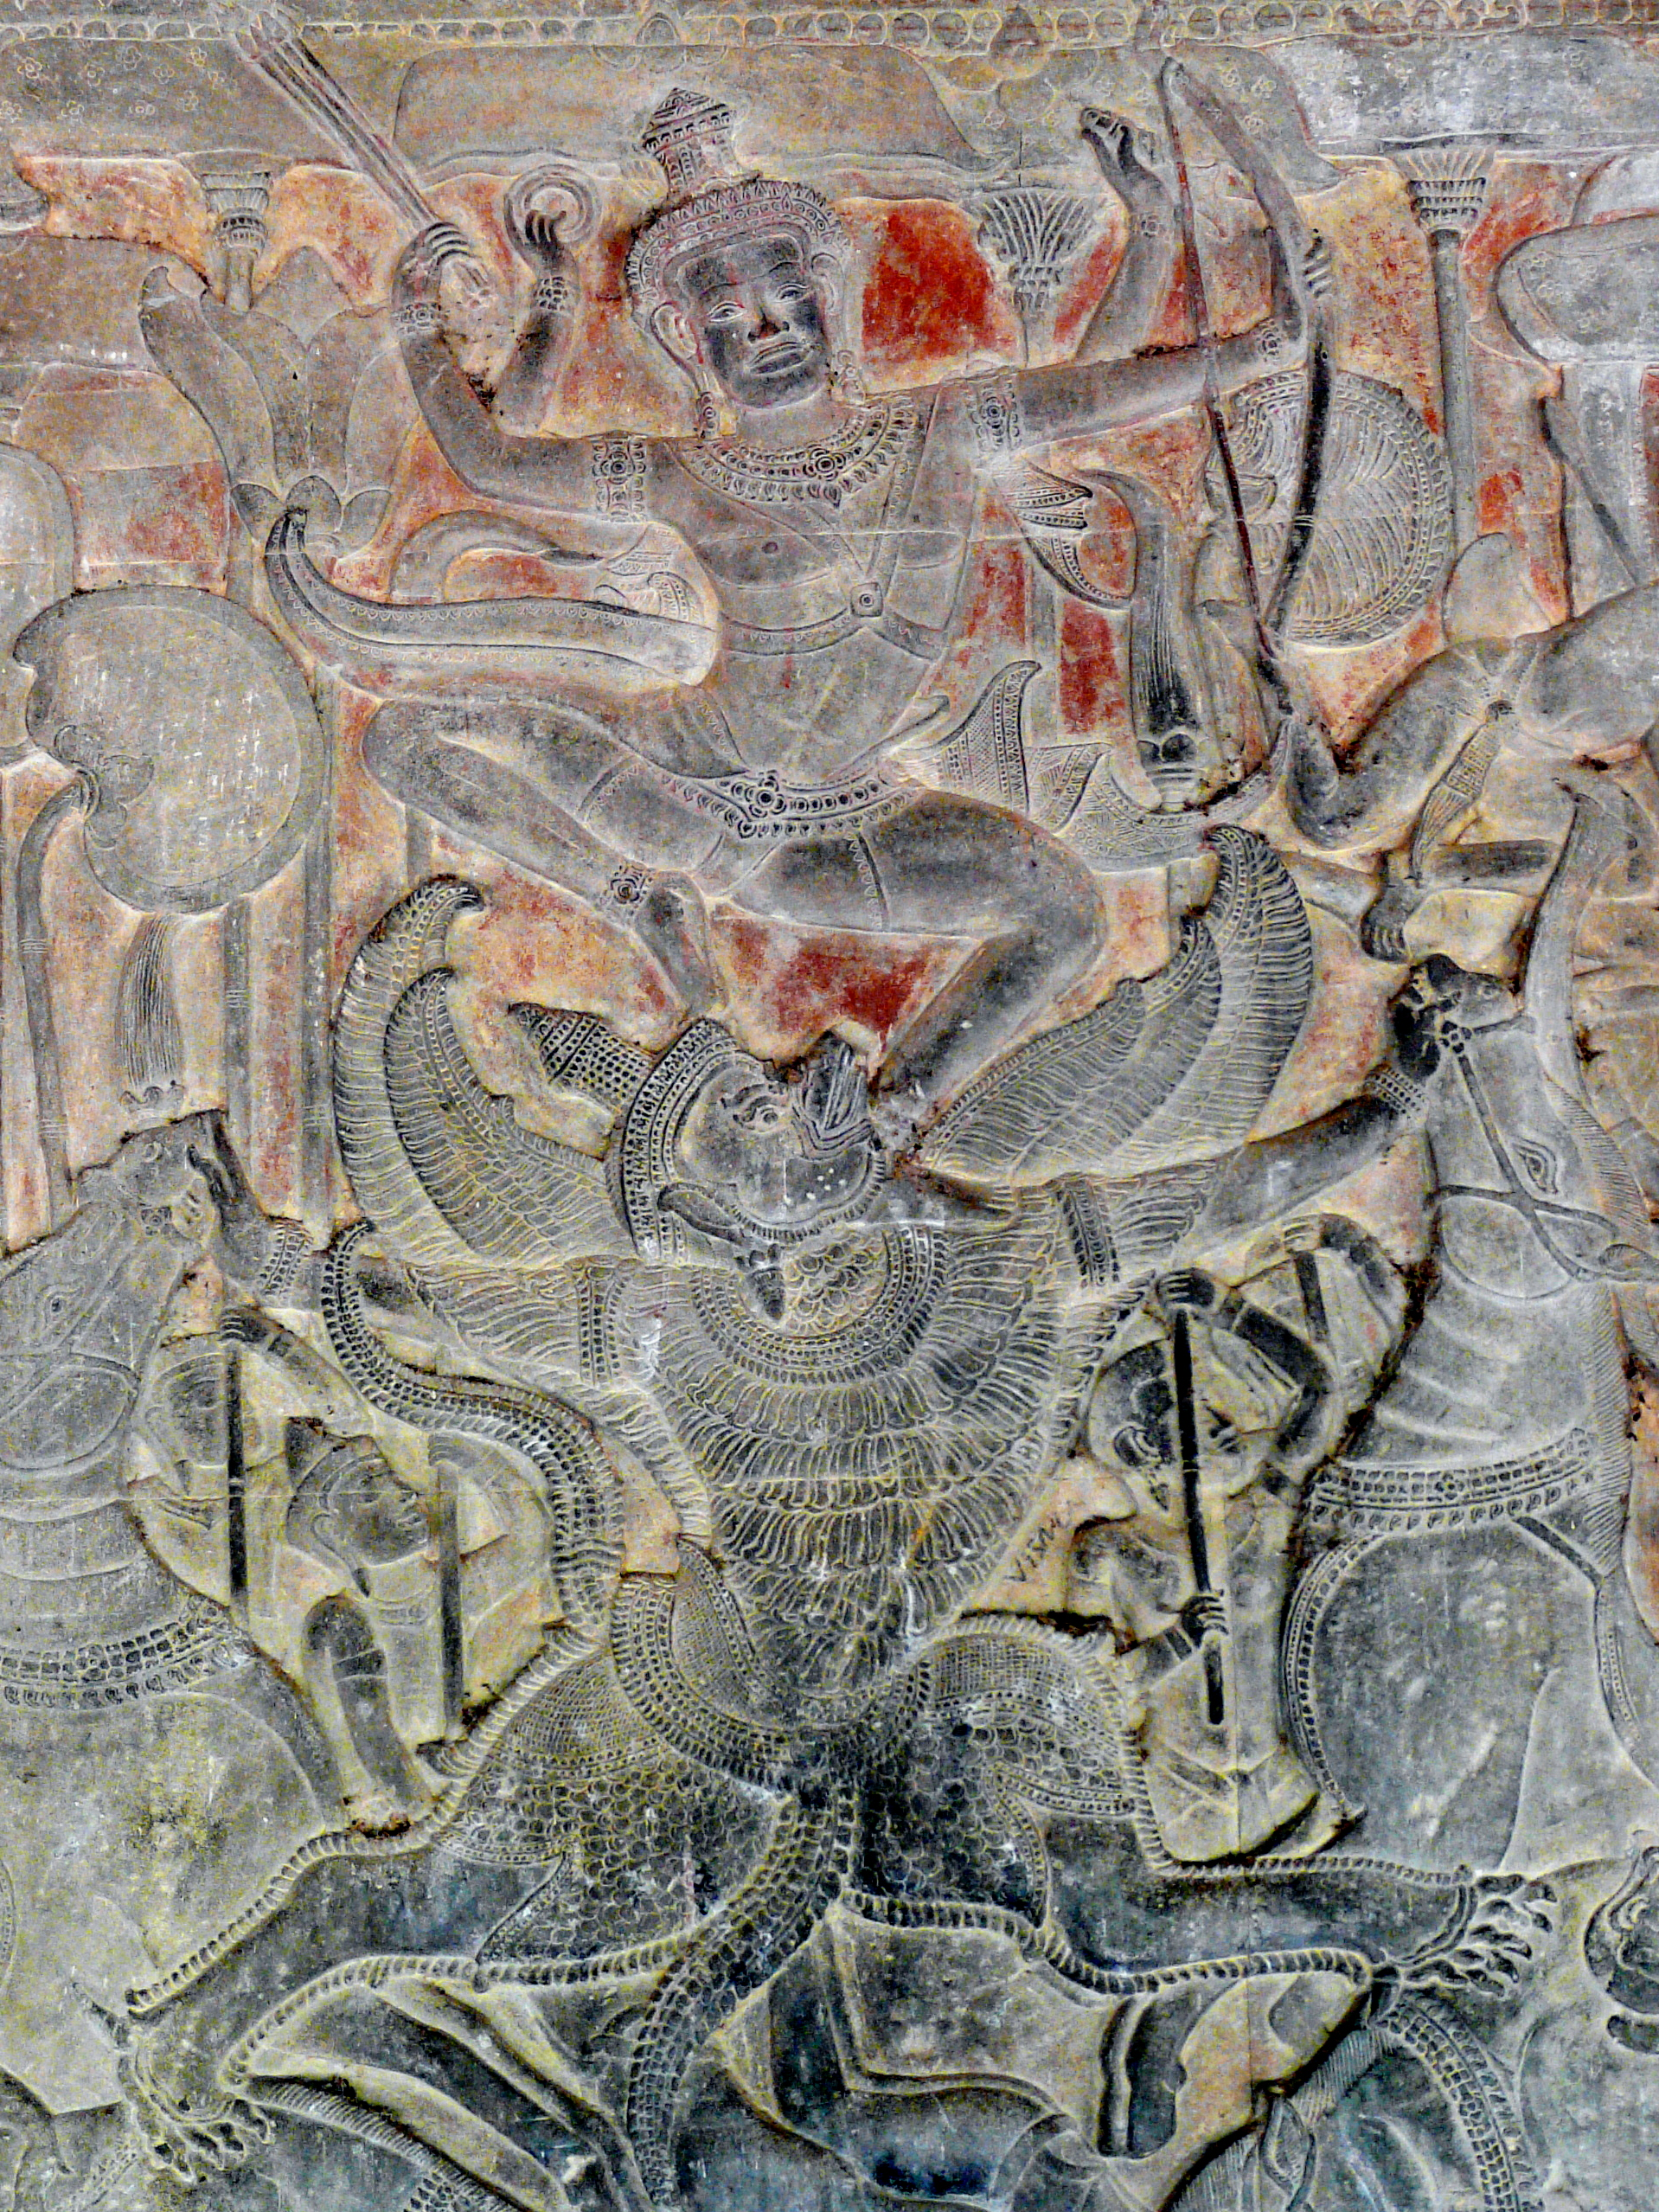 Garud, the devourer of serpents, helps Lord Vishnu defeat demons